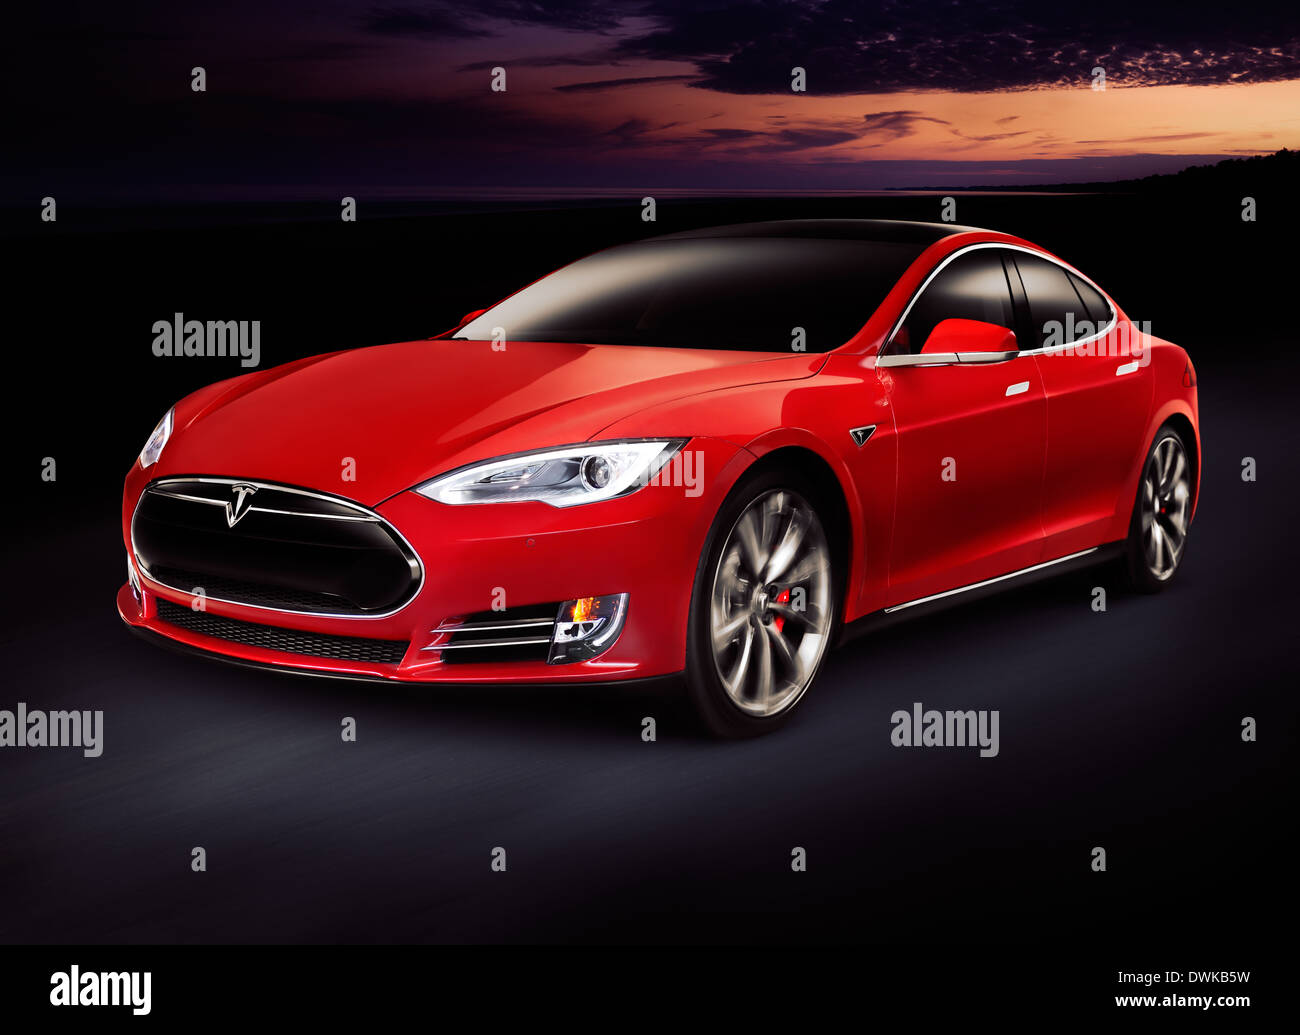 Red 2014 Tesla Model S luxury electric car outdoors on tthe road at night - Stock Image